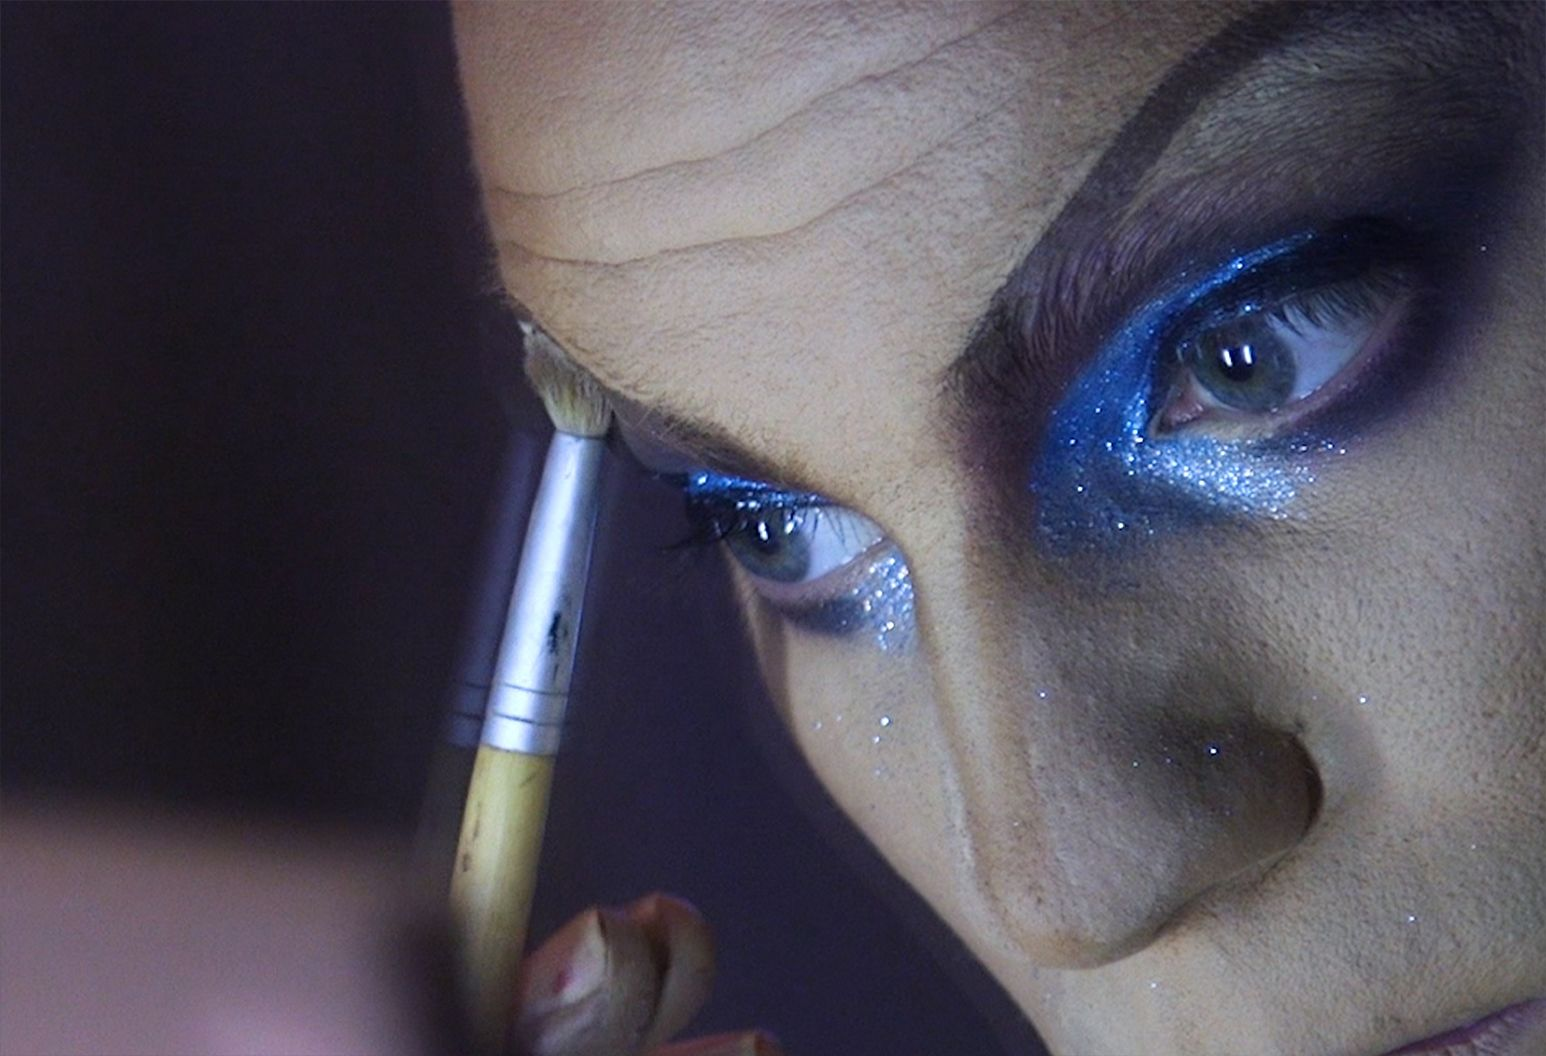 Close up of a man's face putting on make up. His eyes have blue and silver glitter around it and his face is powdered white.